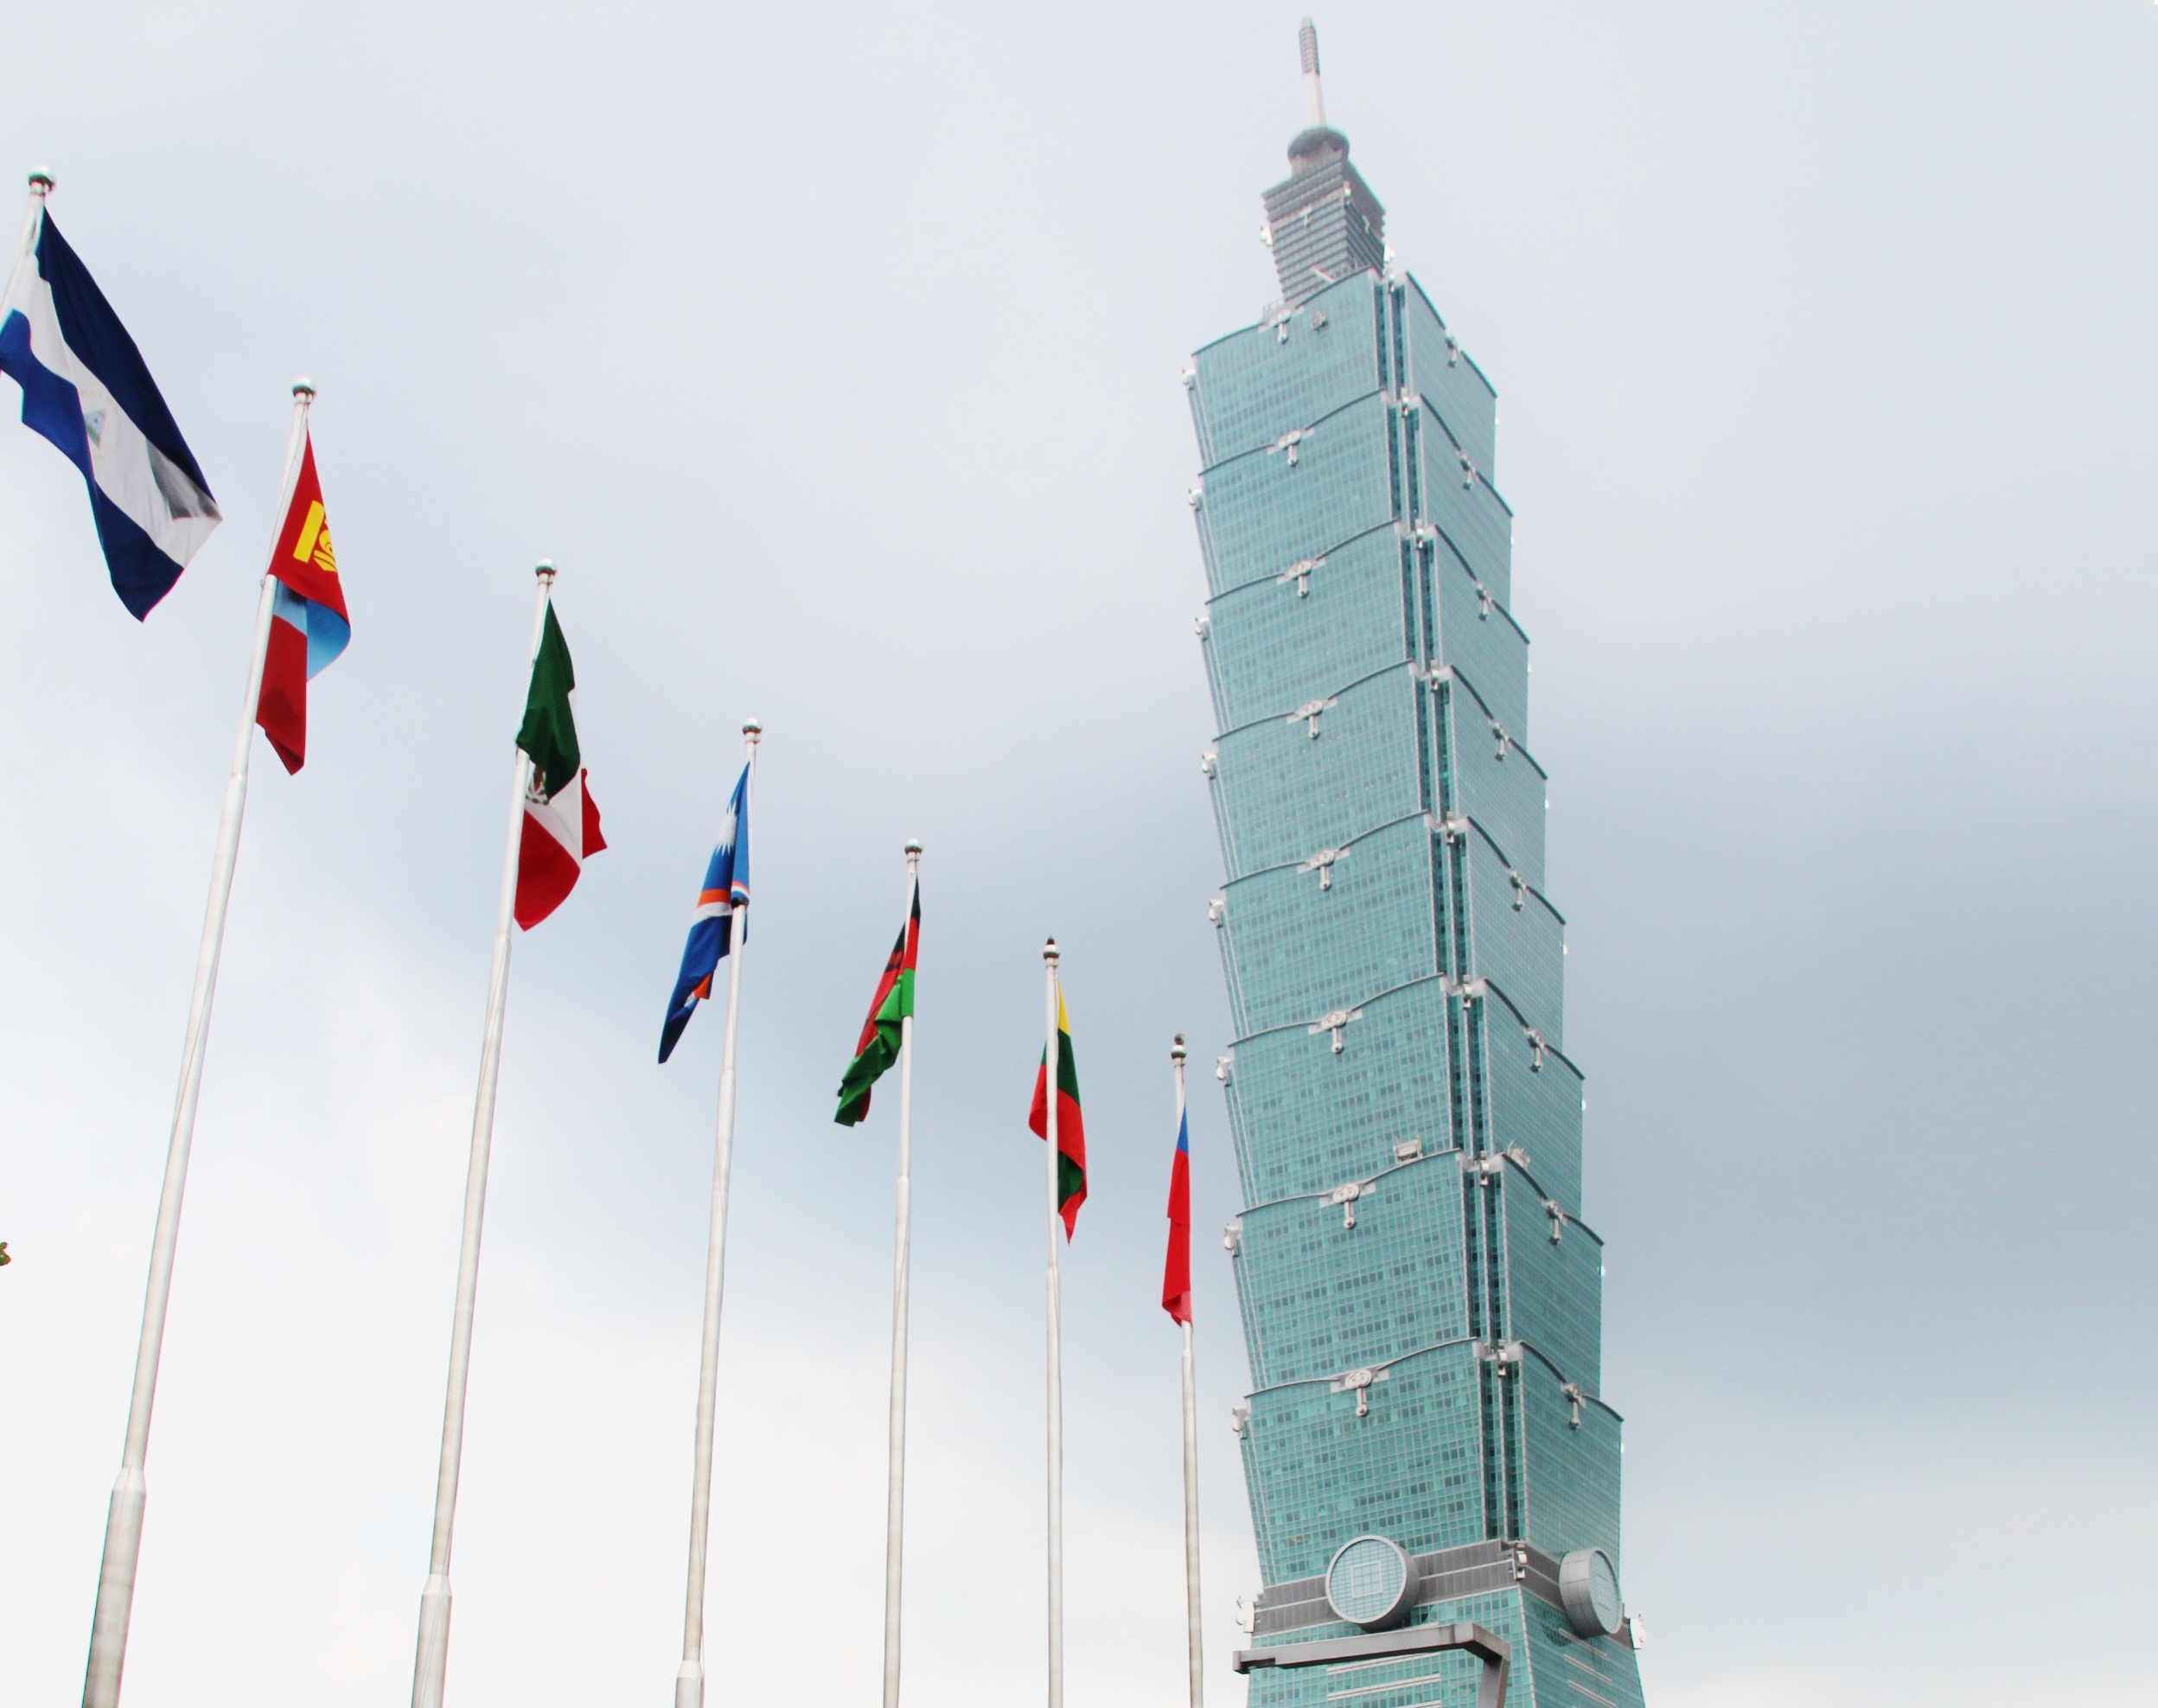 Taiwan moves up to 23rd in IMD World Ranking of Business Talent